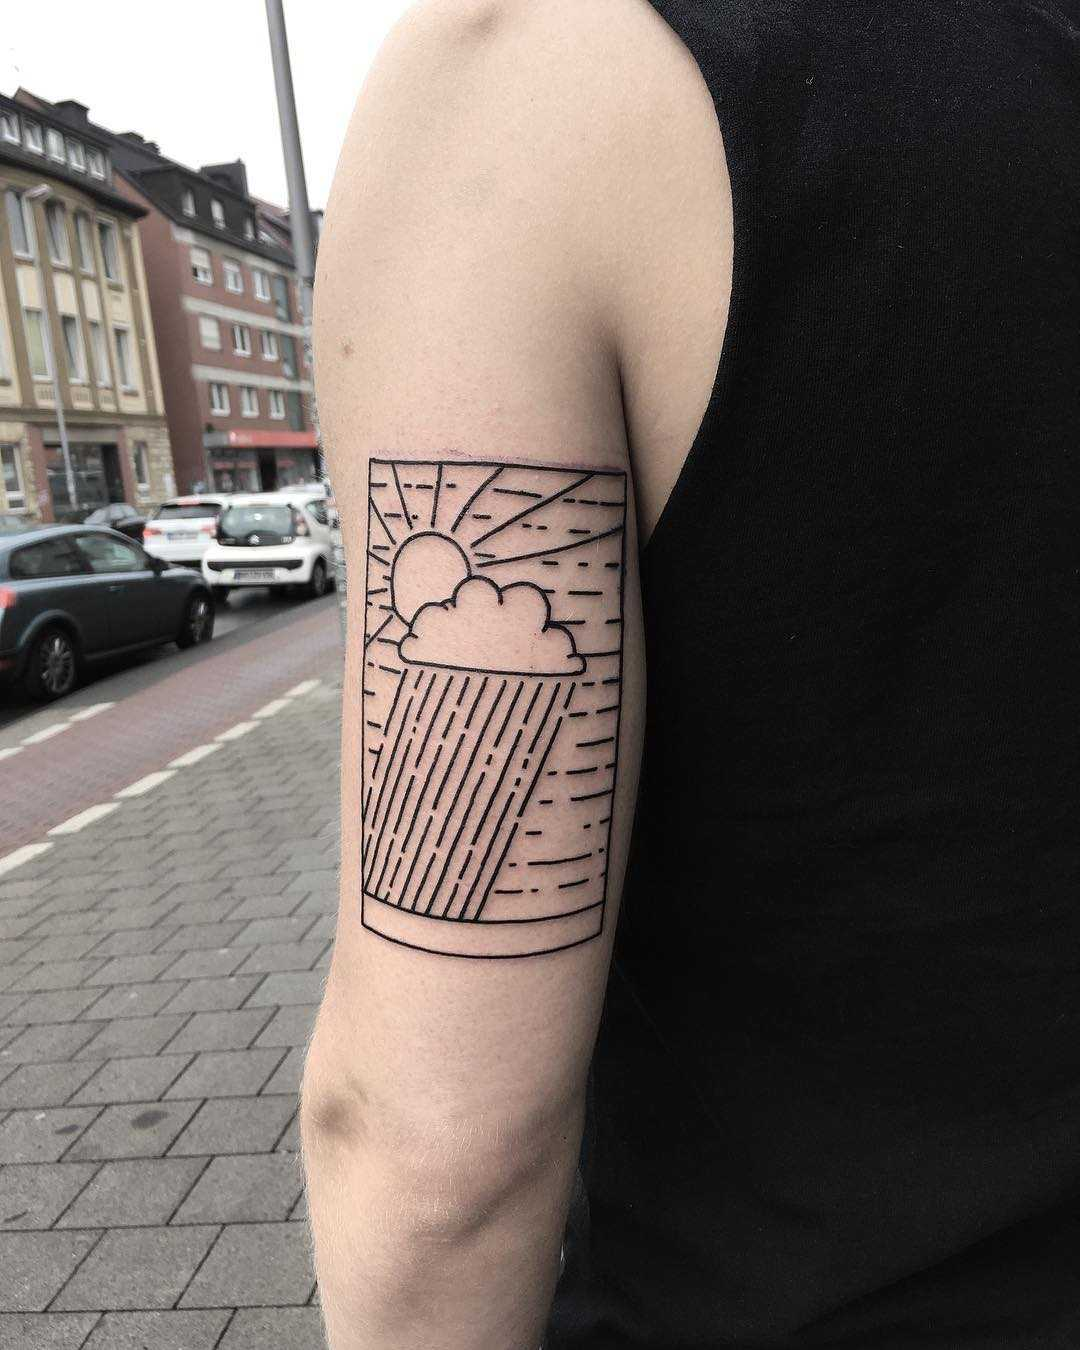 Rainy days by tattooist Spence @zz tattoo